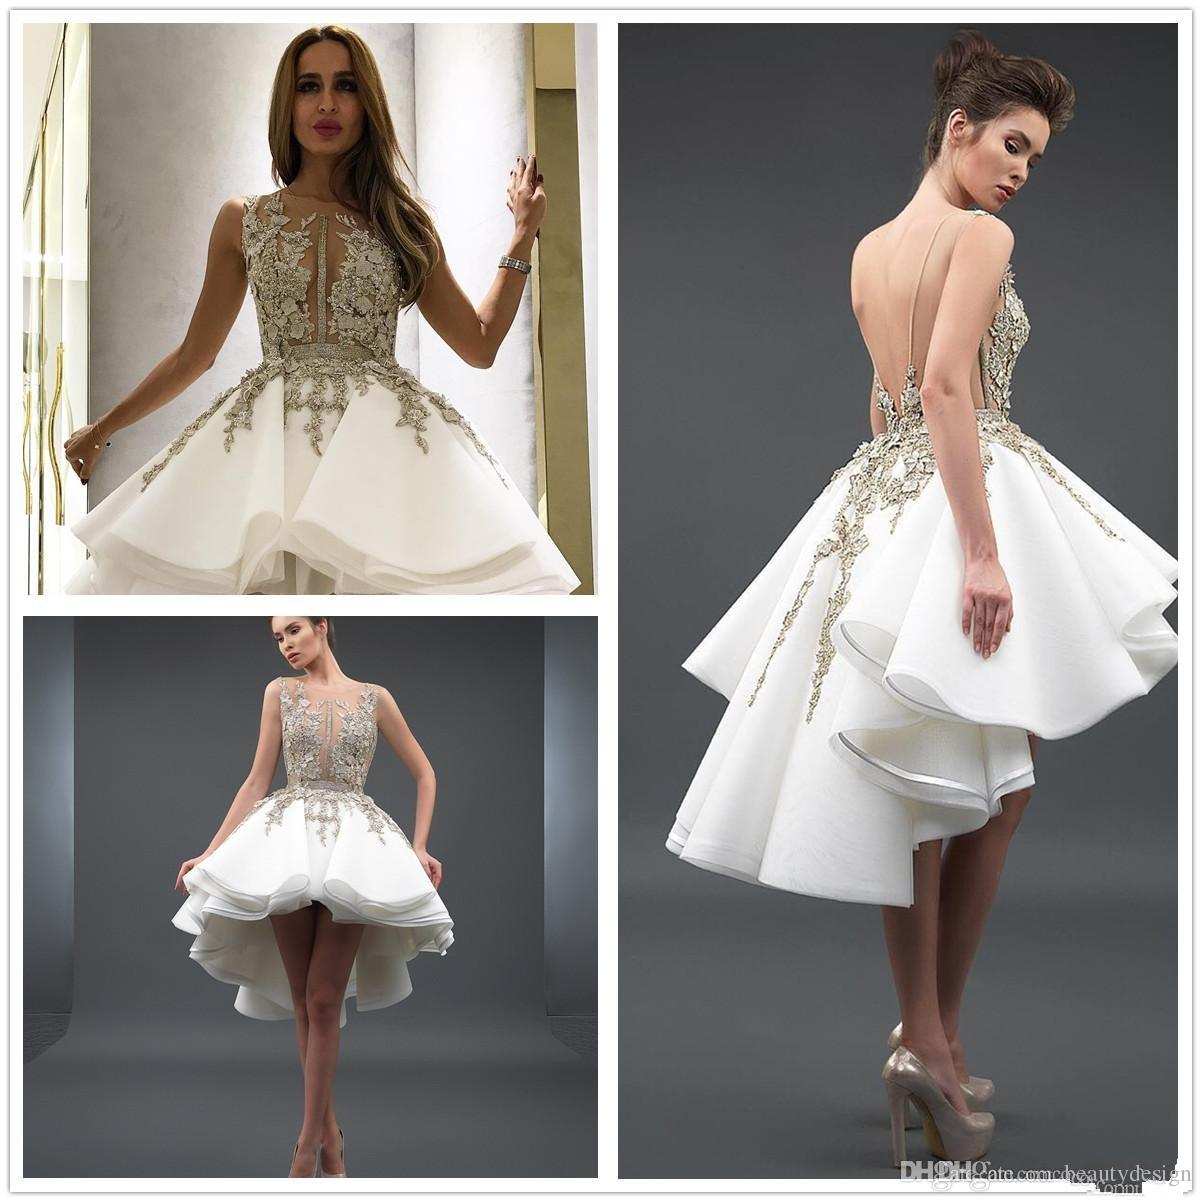 fda2890a9a9 2018 Sheer Crew Organza A Line High Low Cocktail Dresses Lace Applique  Beaded Backless Short Party Evening Dresses Ivory Cocktail Dresses Long  Sleeved ...